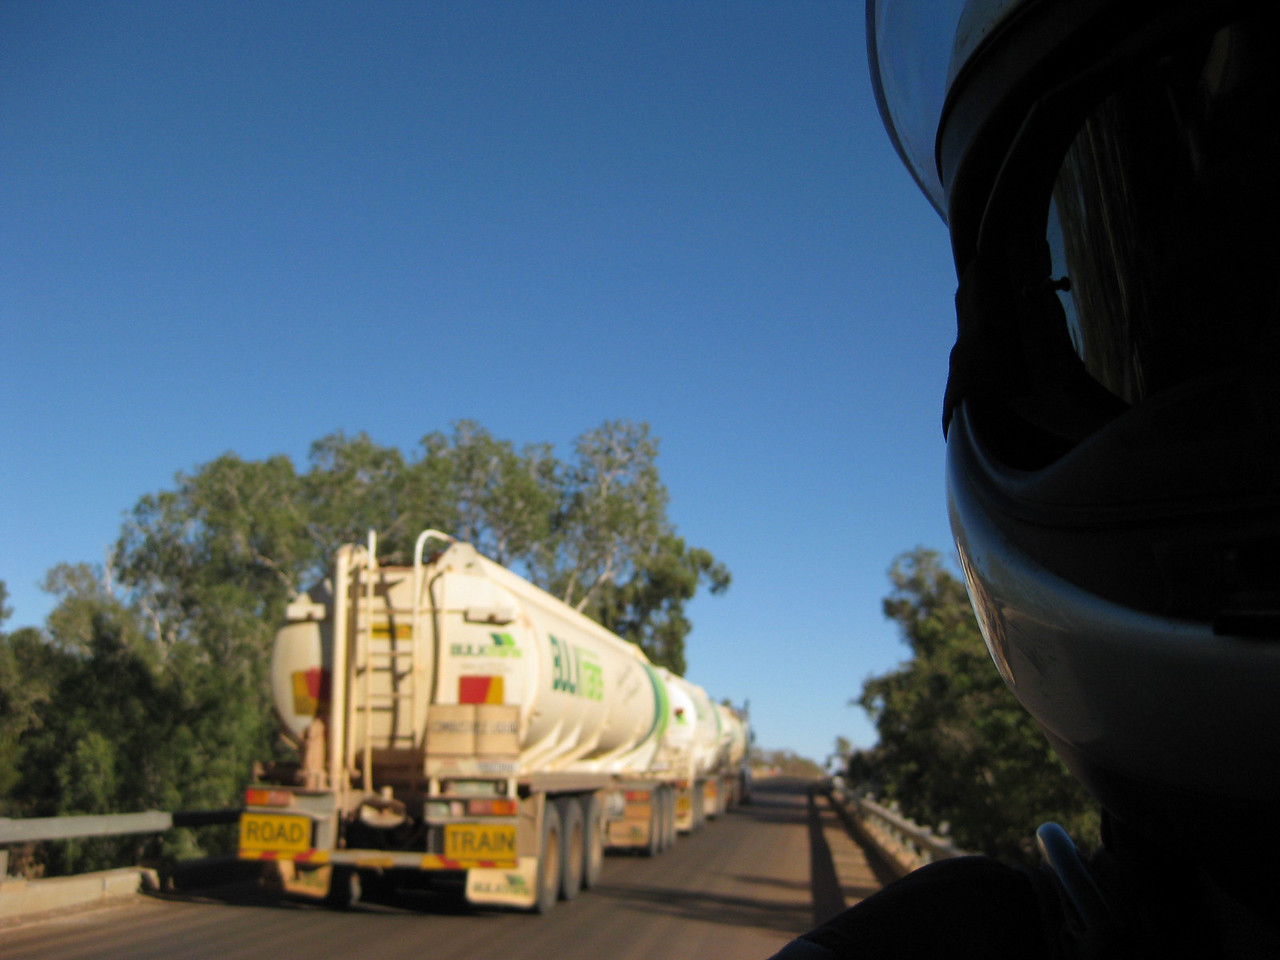 Being passed on a bridge by a road train while taking a photo. Nearly got bumped off the bridge.